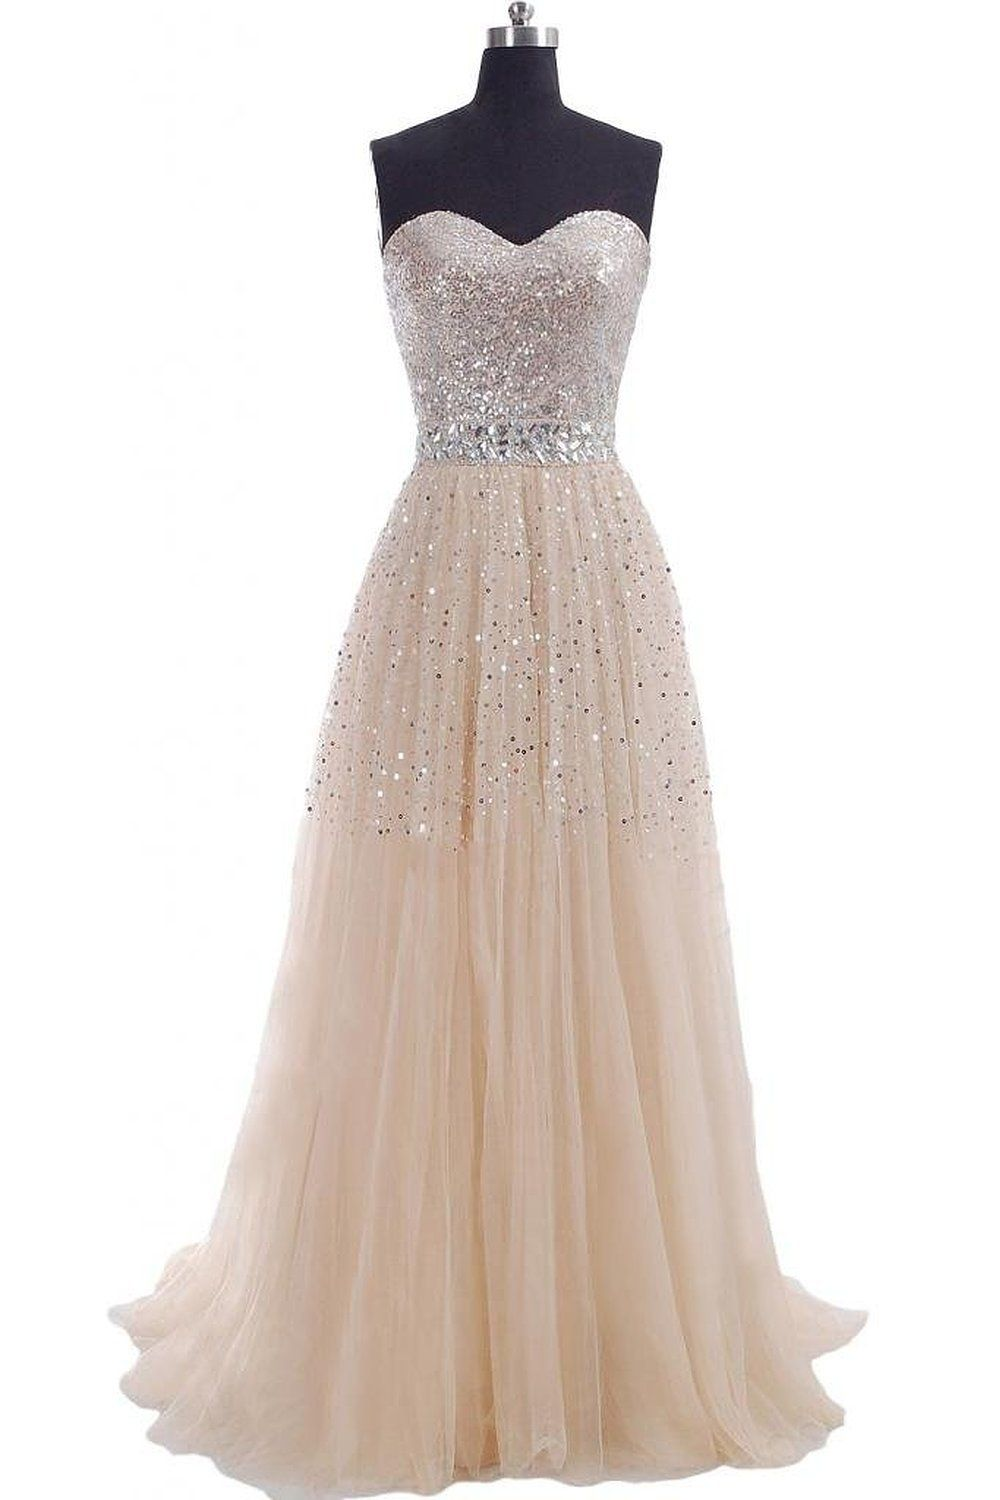 Classic prom dress tulle party dress champagne prom dress long